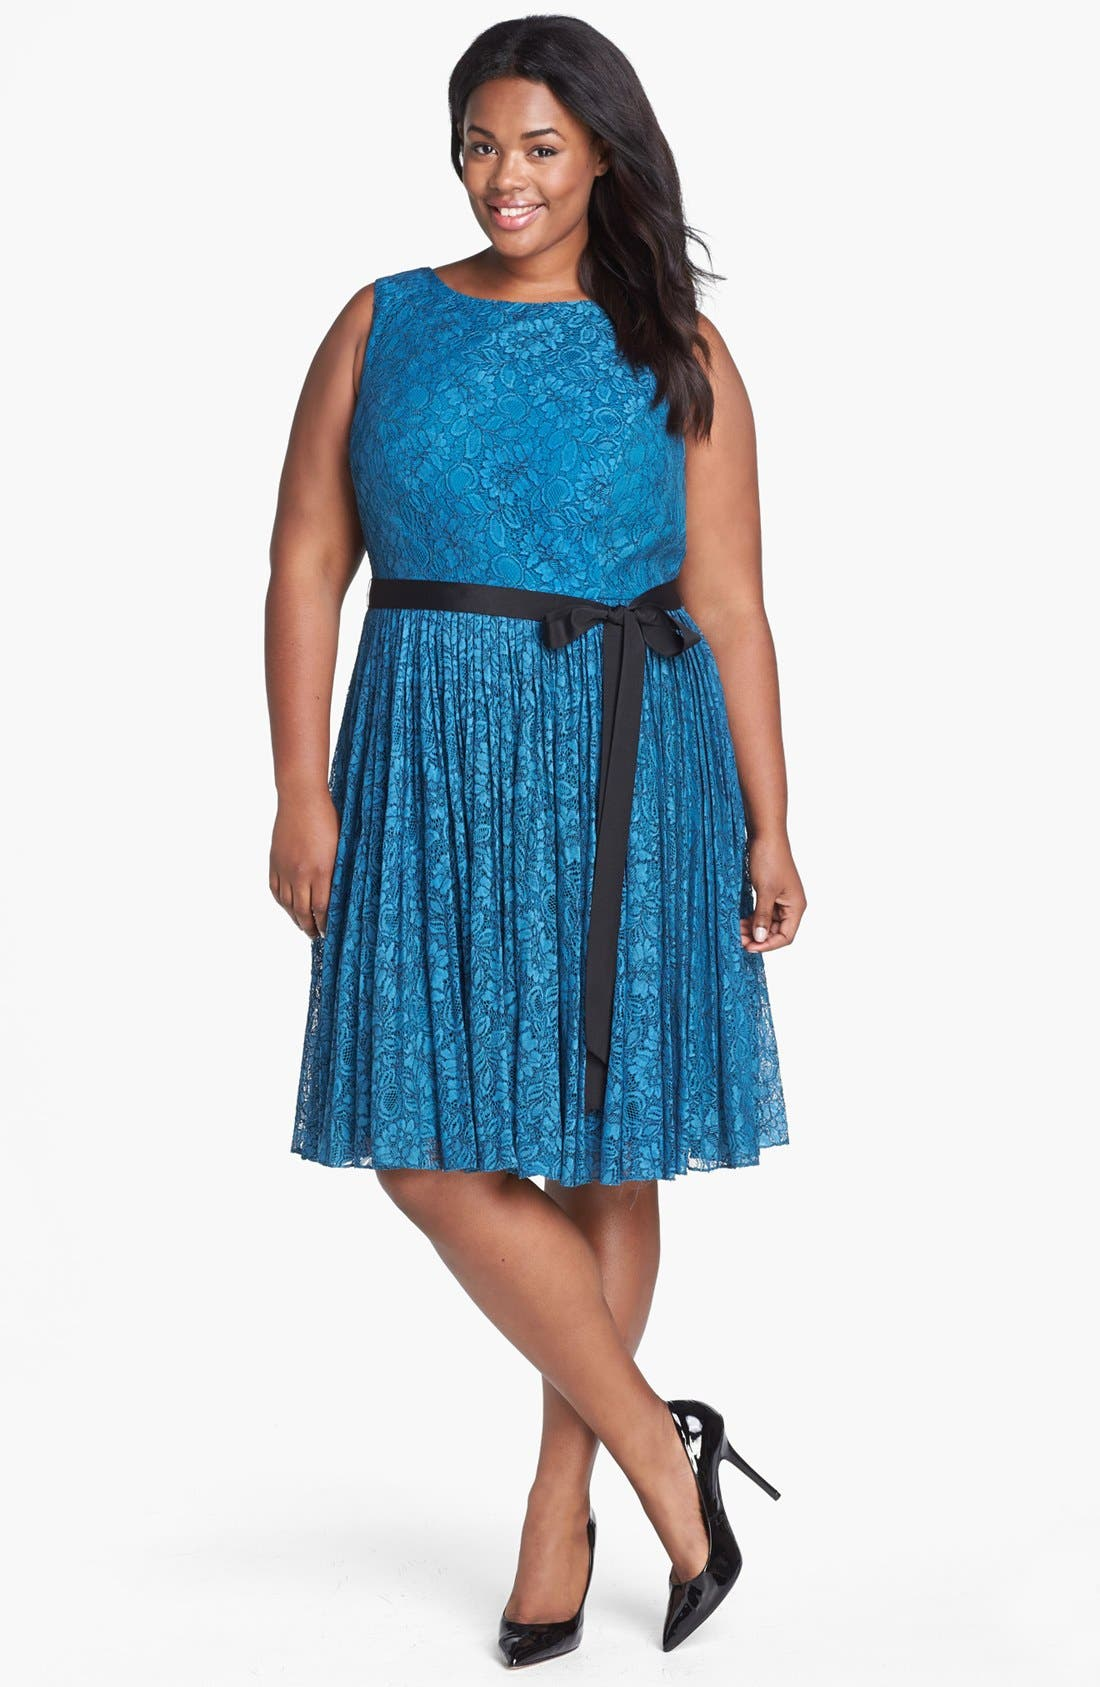 Main Image - Adrianna Papell Lace Fit & Flare Dress (Plus Size)